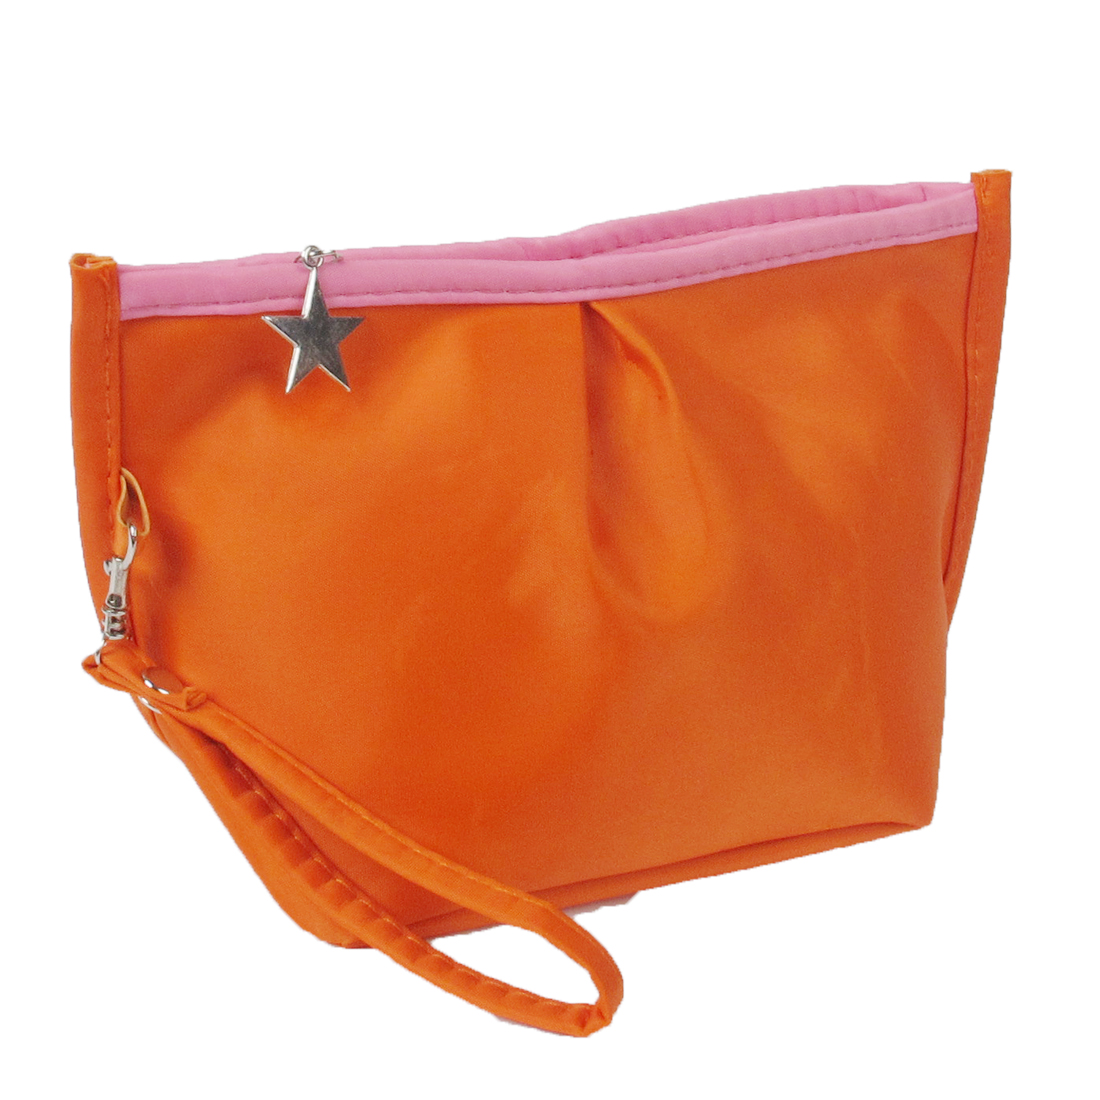 Metallic Star Shape Zip Wallet Purse Bag Coins Cash Holder Orange for Woman